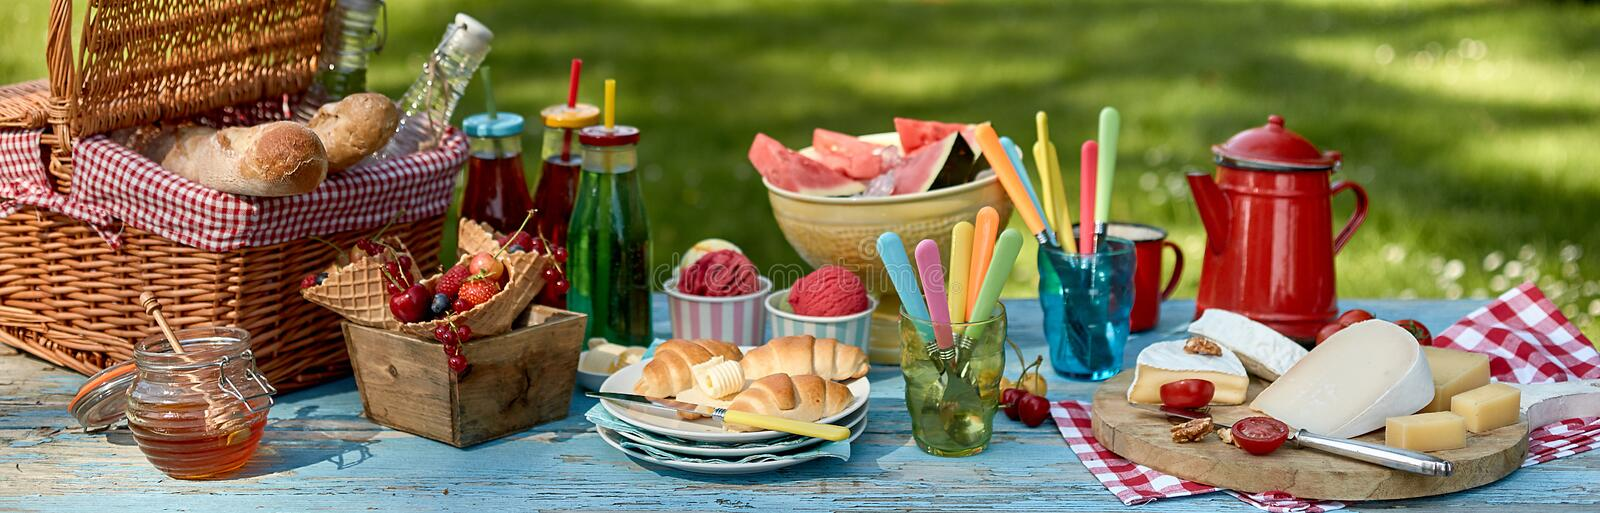 Panorama banner with a healthy summer picnic stock images